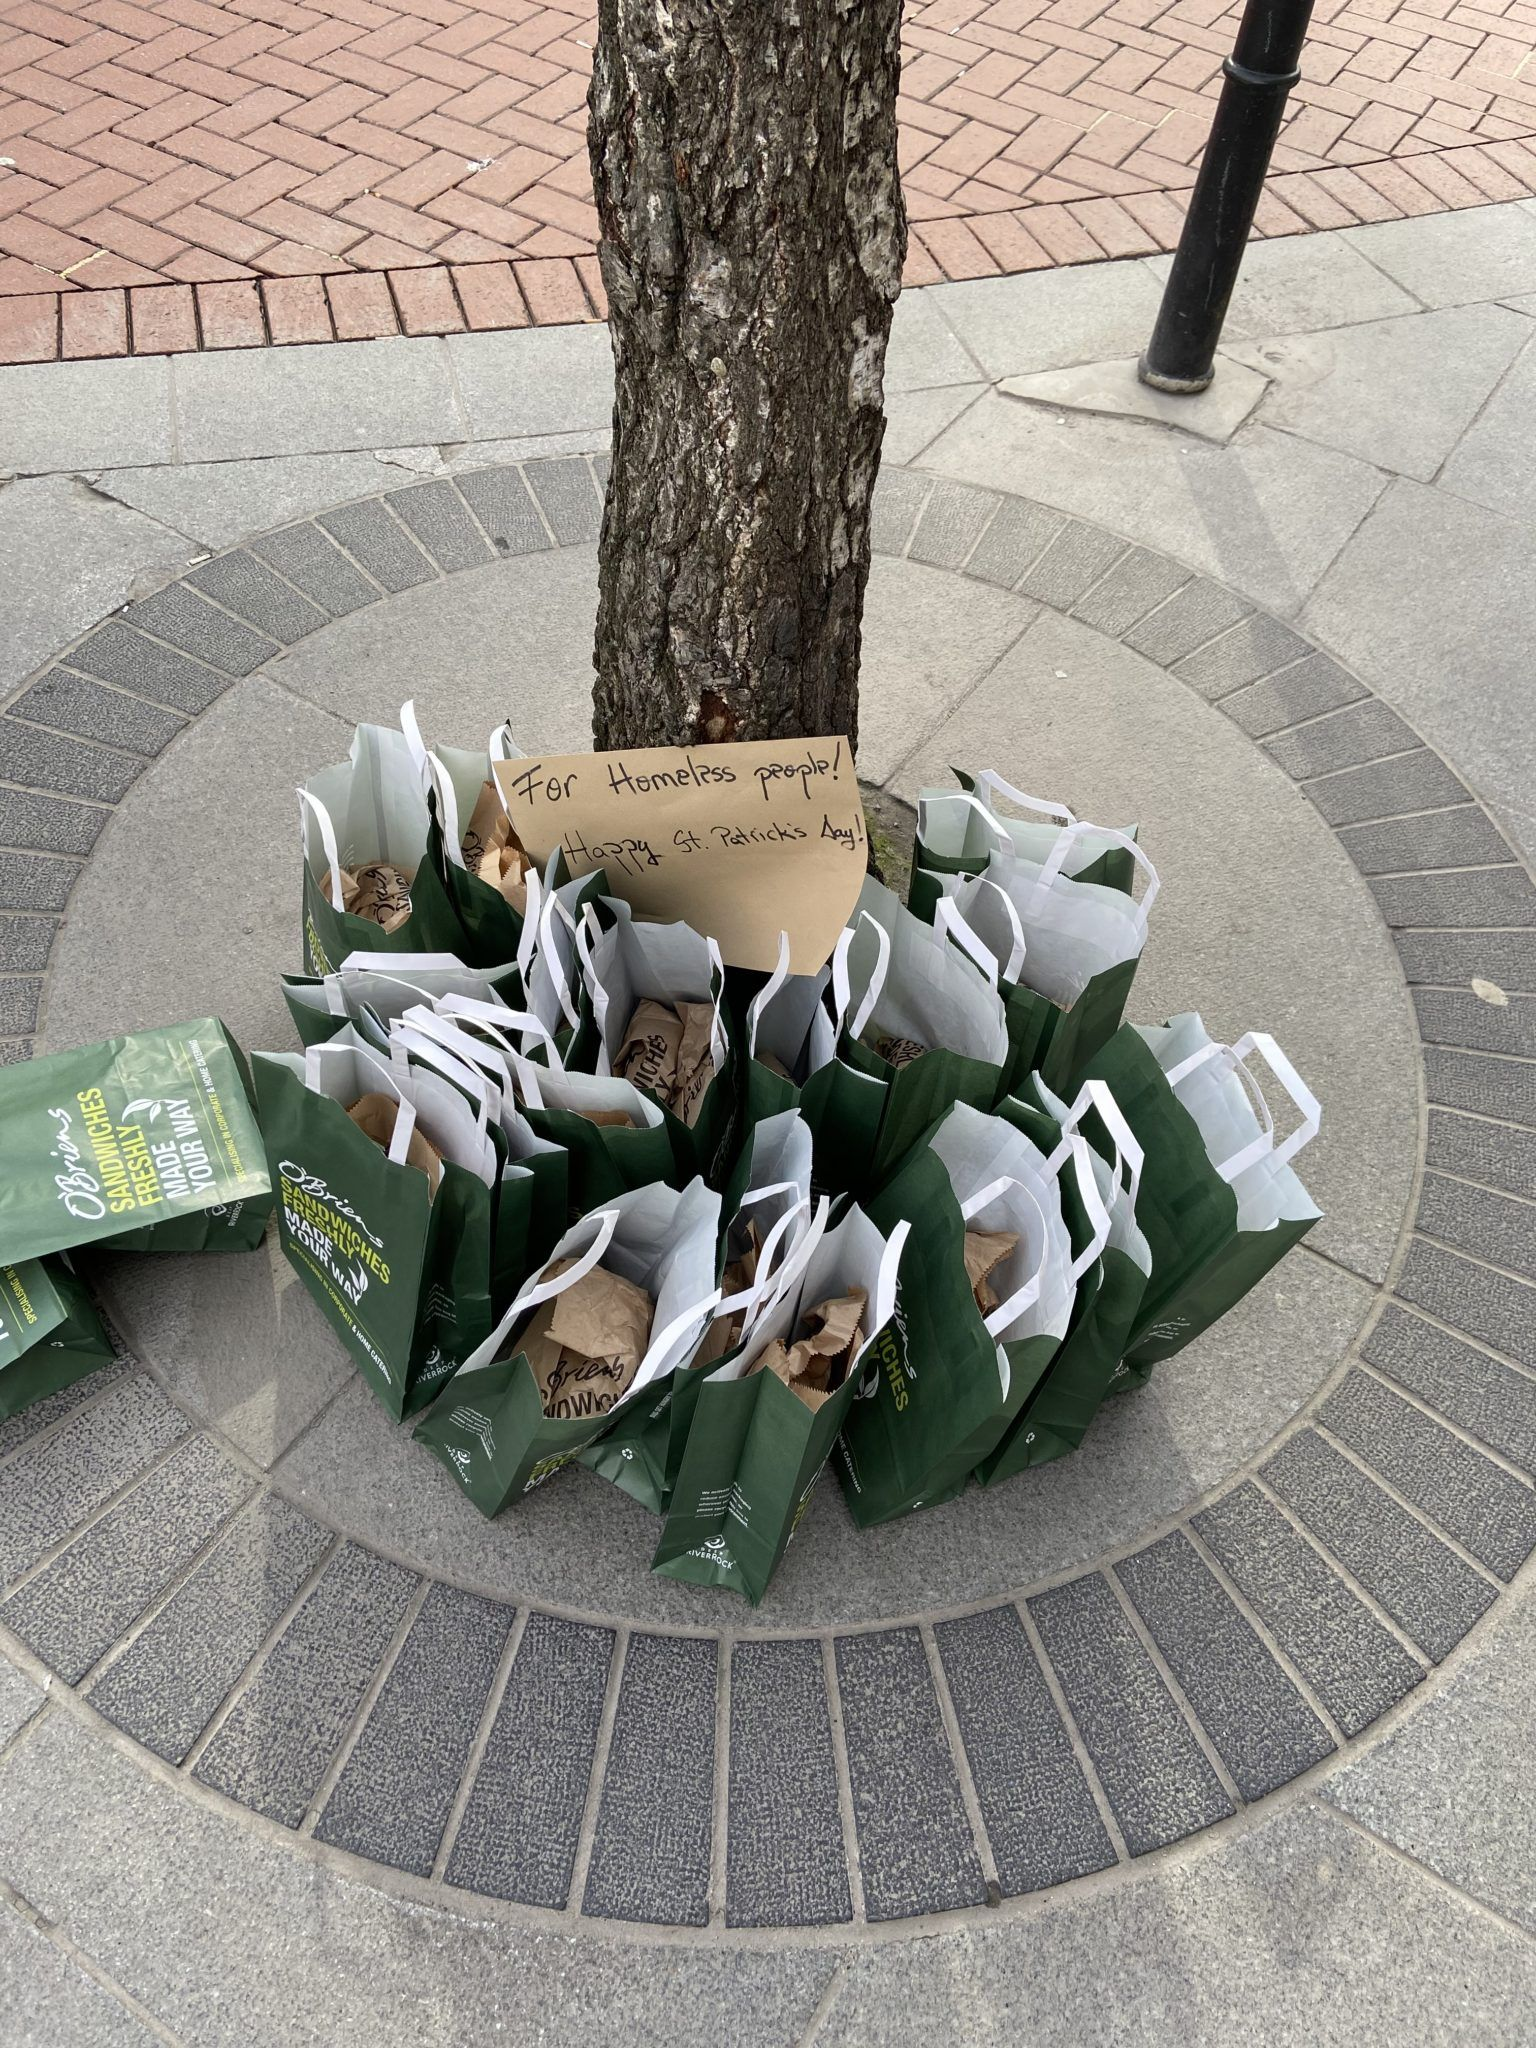 O'Brien's sandwiches for the homeless